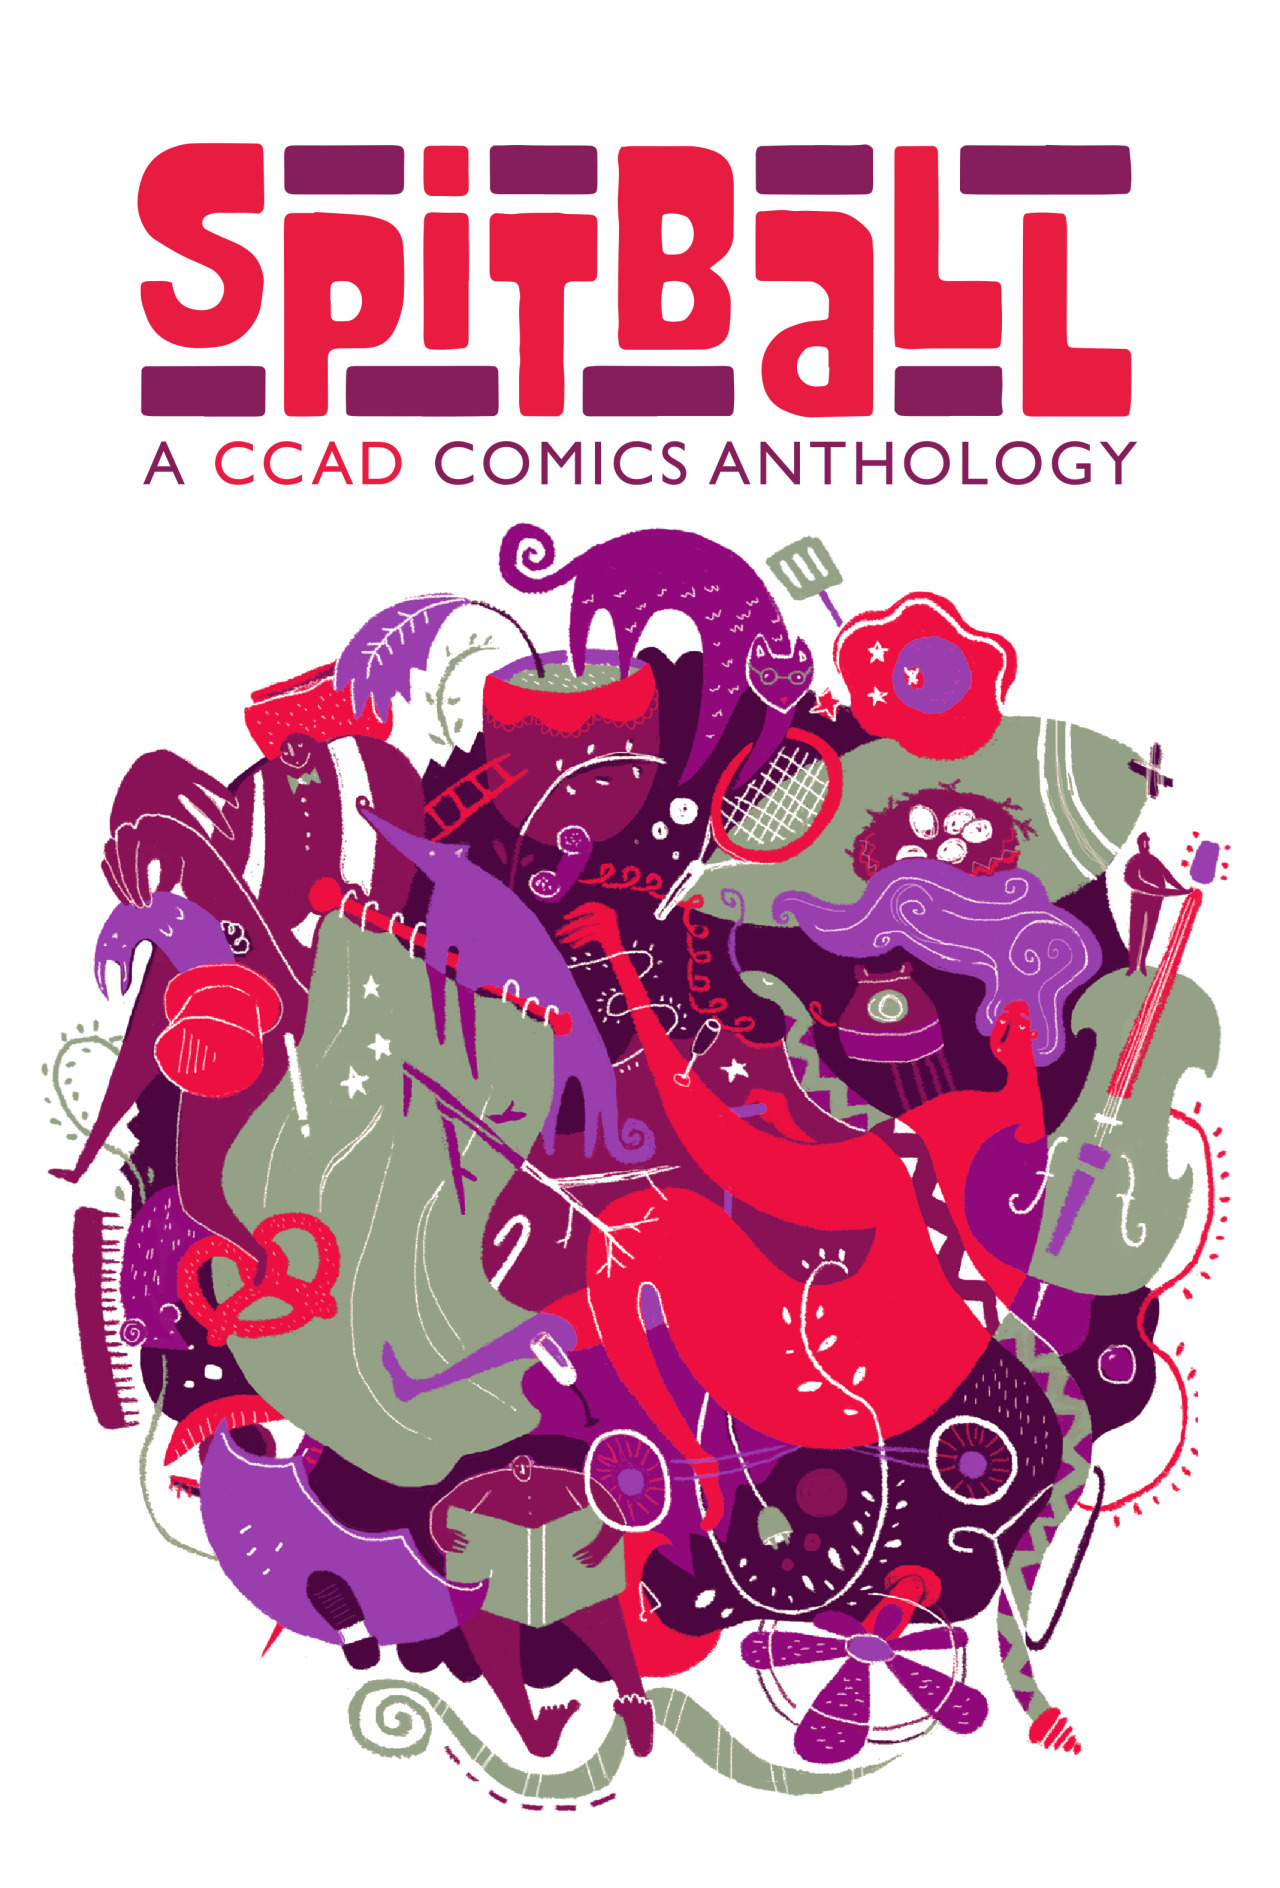 Spitball: A CCAD Comics Anthology